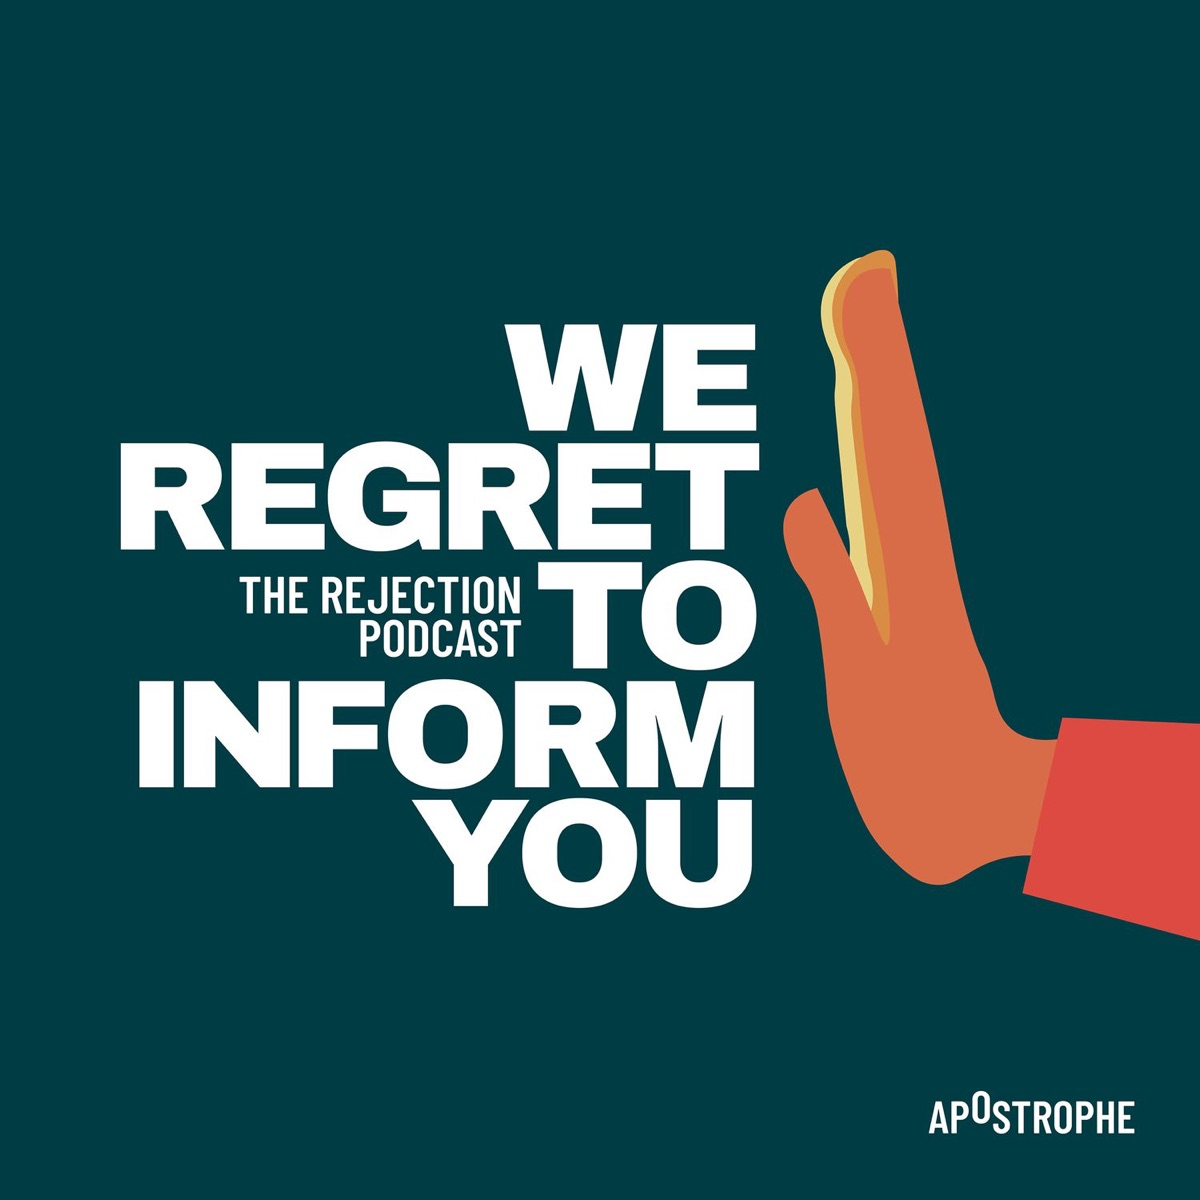 We Regret To Inform You: The Rejection Podcast